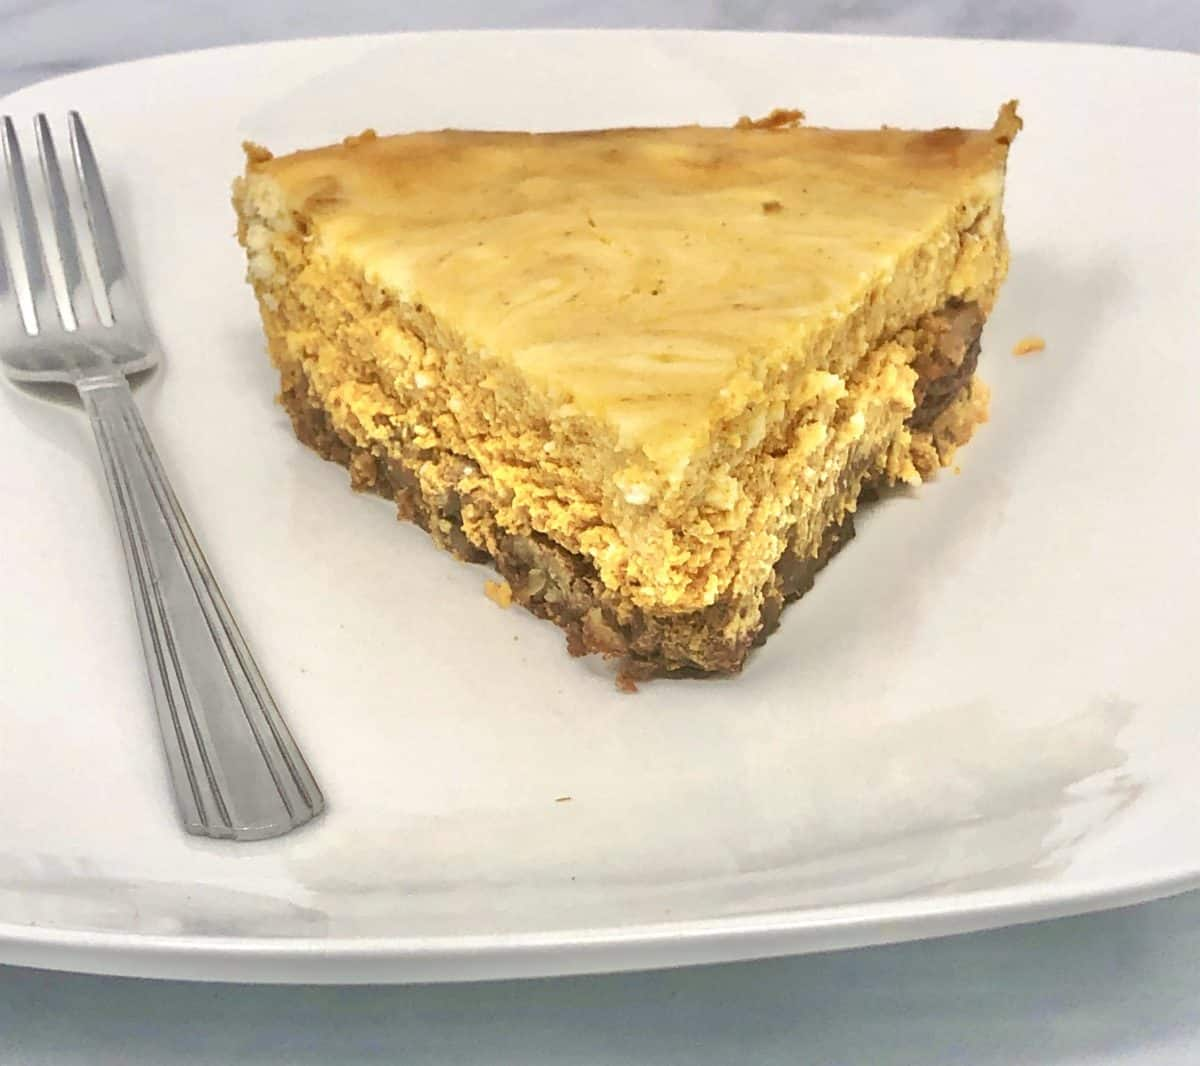 A slice of marble pumpkin cheesecake on a plate with a fork.